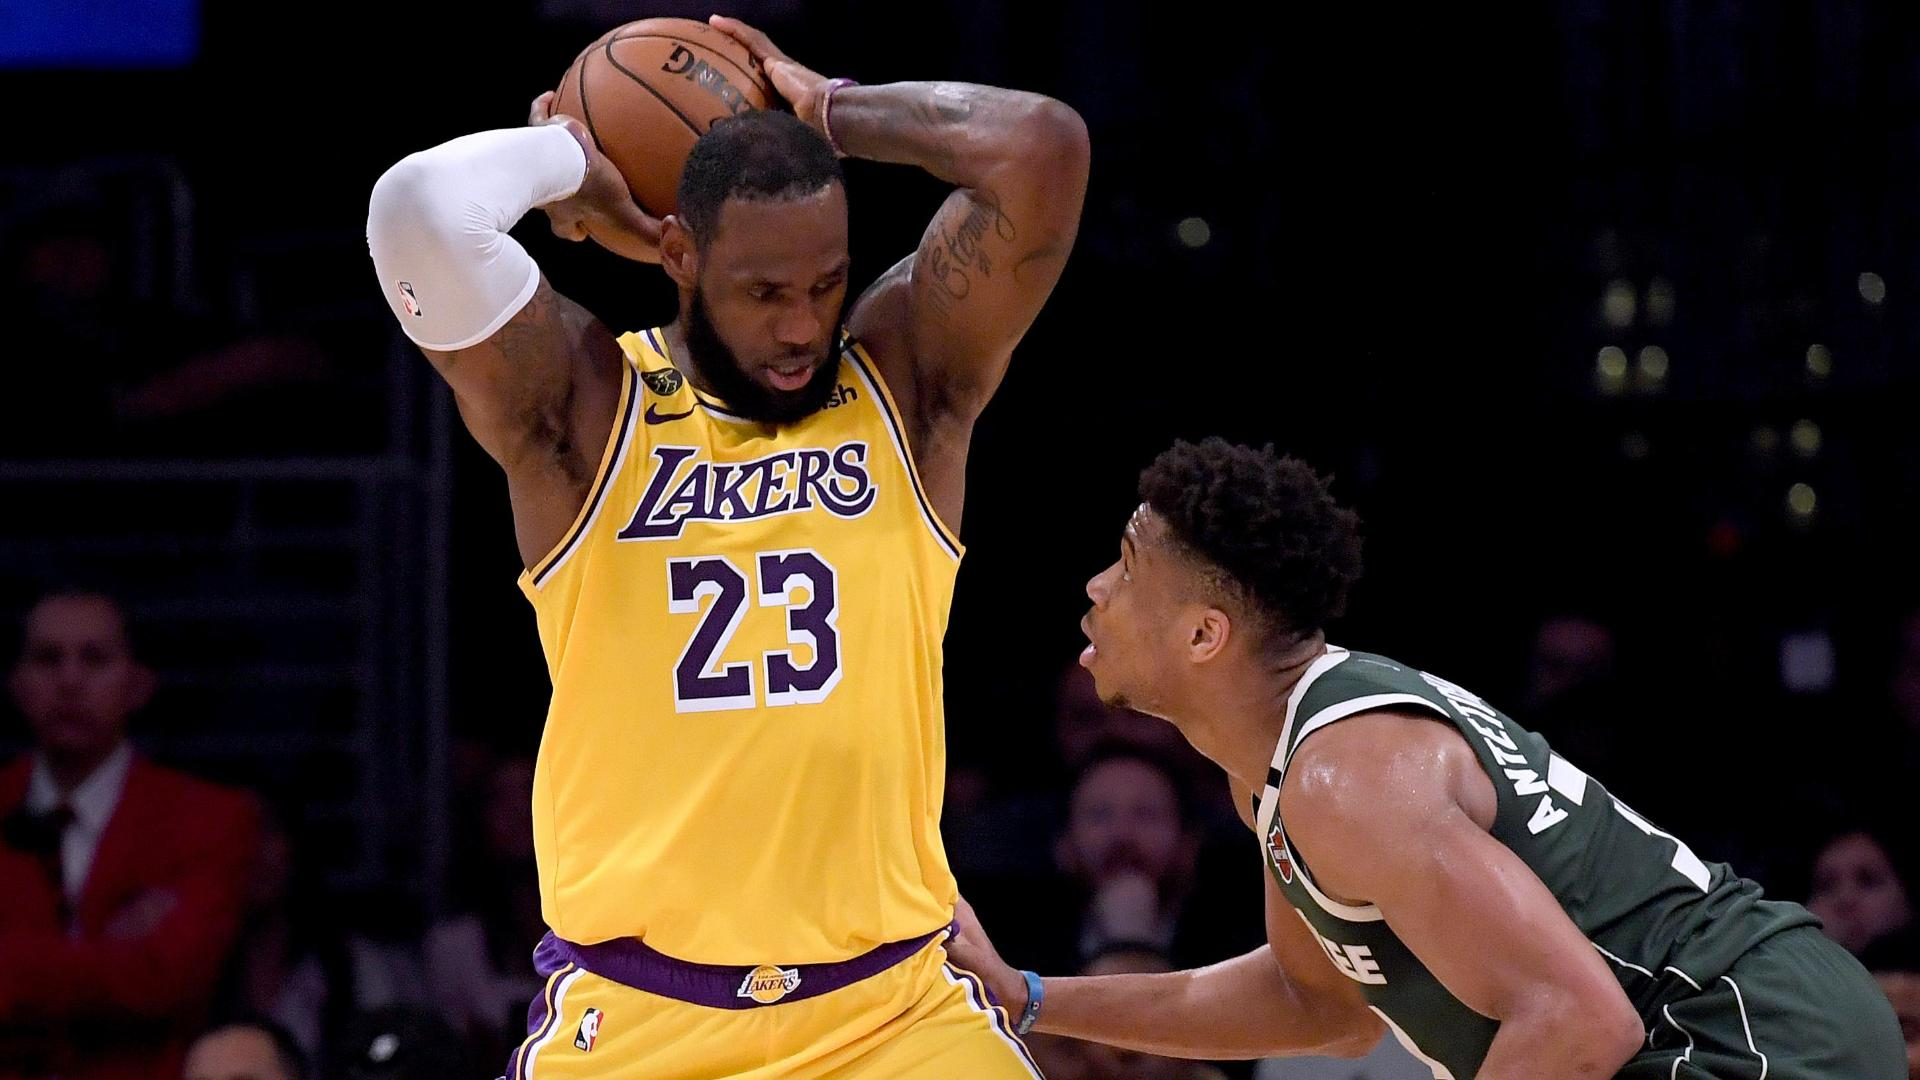 LeBron gets the better of Giannis in battle of MVP candidates